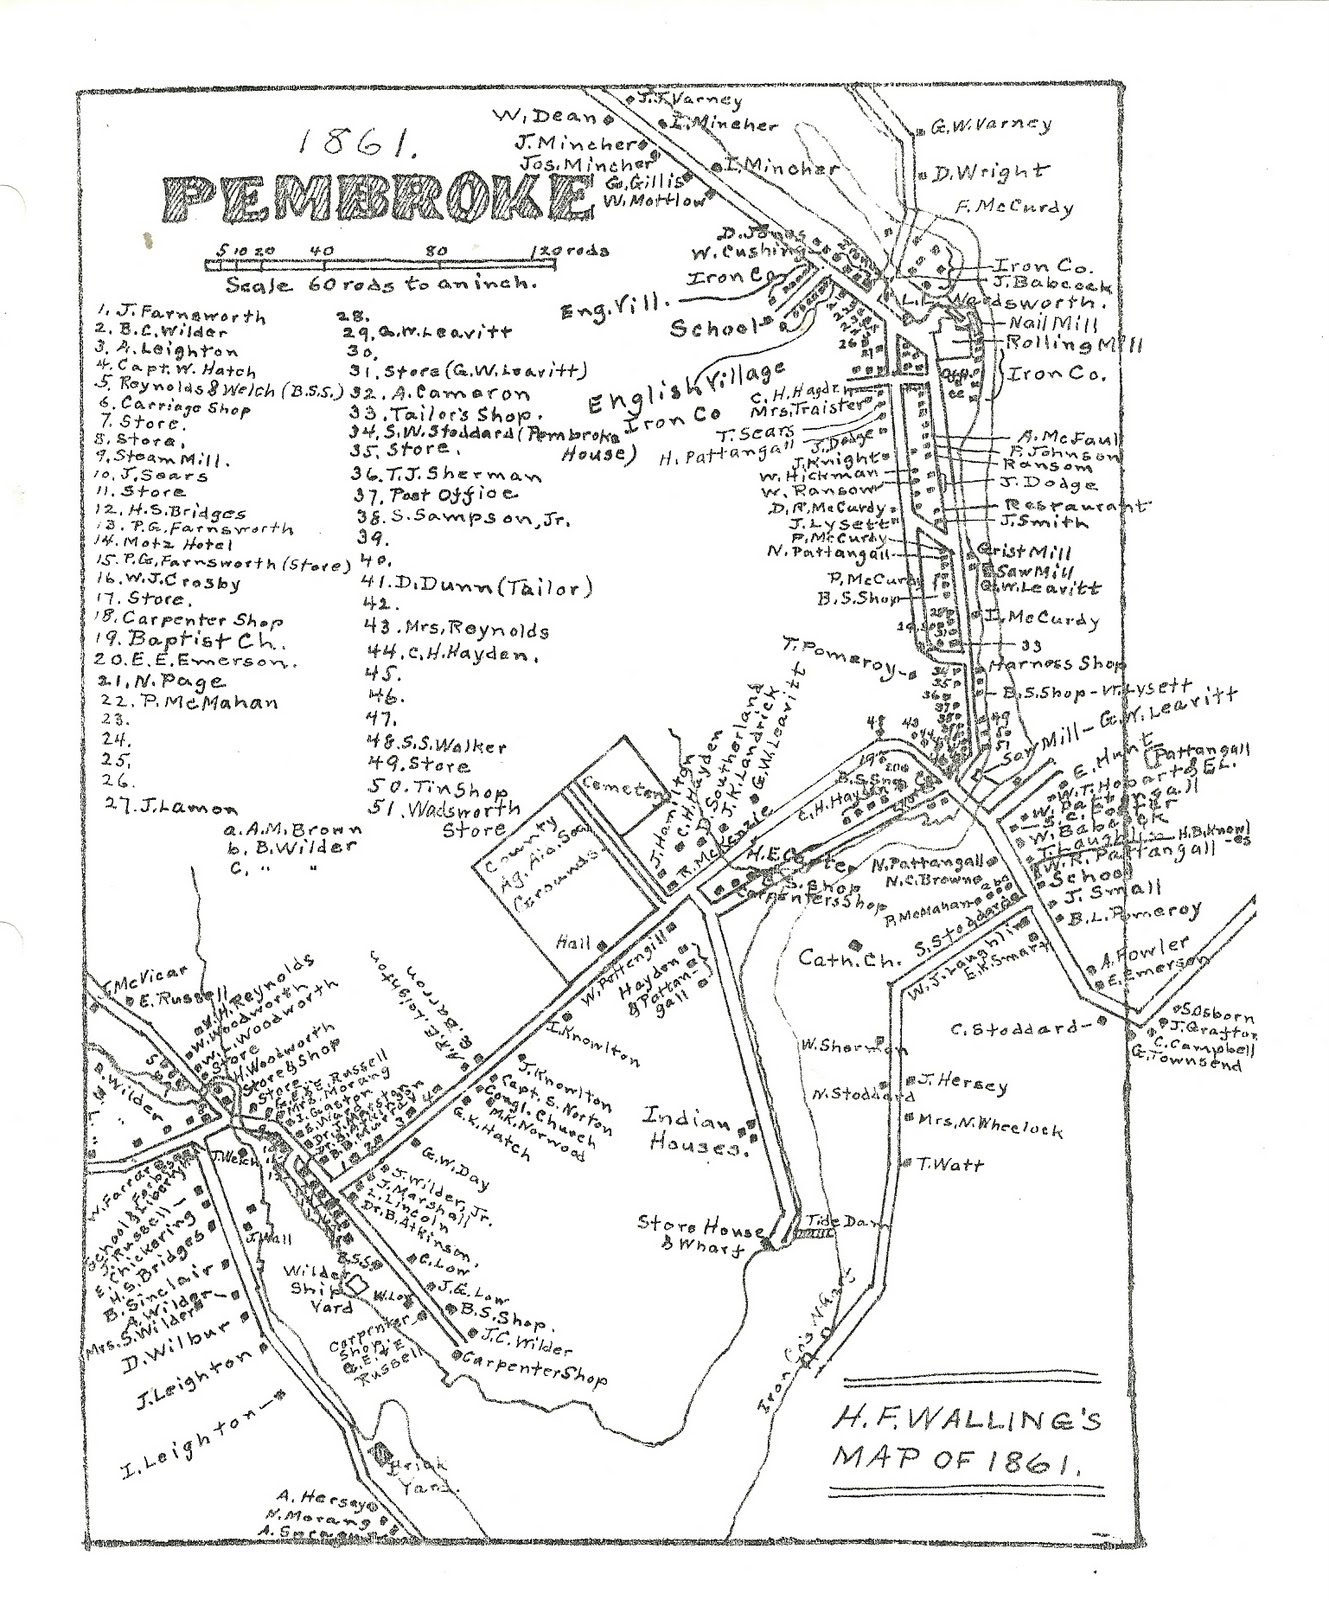 Heirlooms Reunited: 1861 map of the Village of Pembroke, Maine